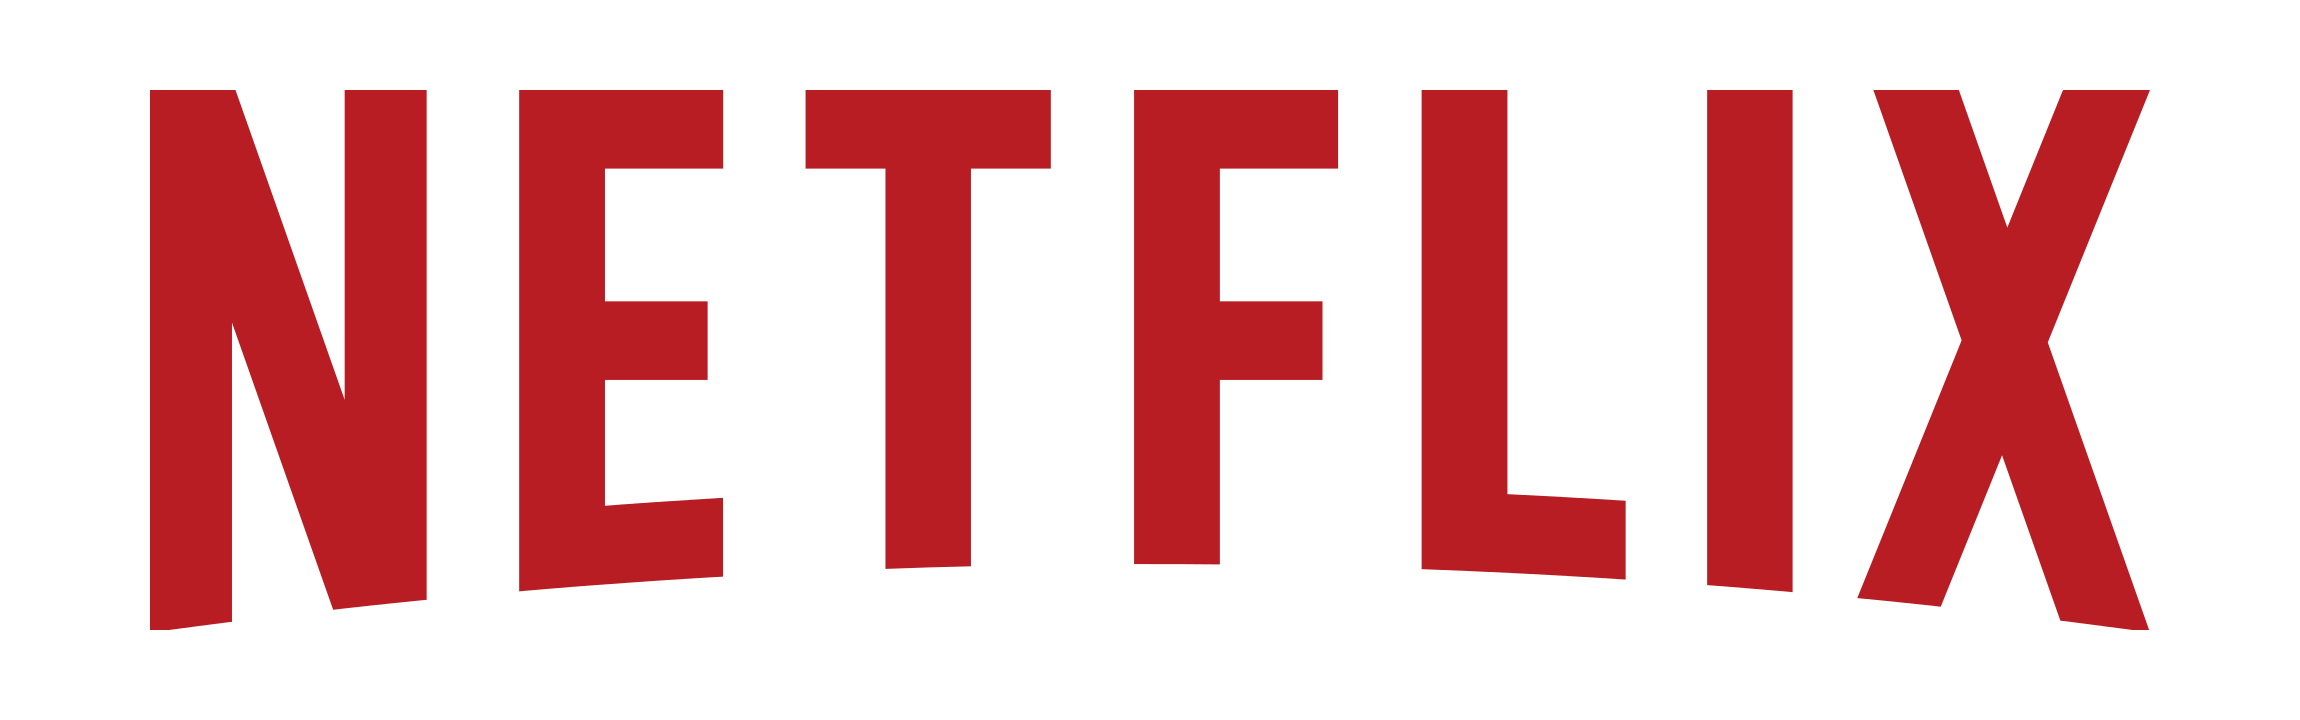 netflix inc Updated annual income statement for netflix inc - including nflx income, sales & revenue, operating expenses, ebitda and more.